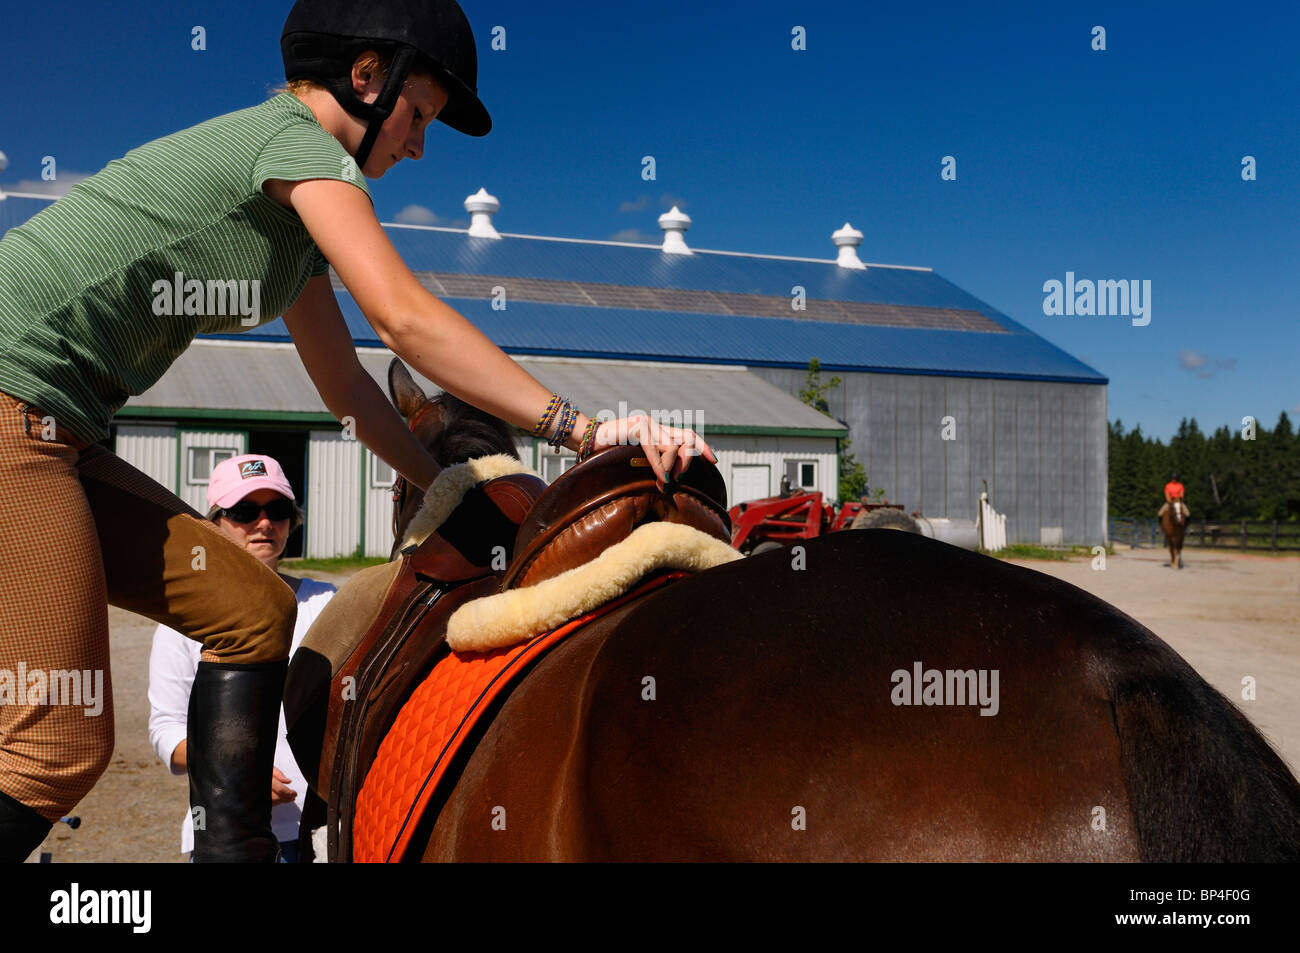 Woman holding horse  while young female rider mounts her thoroughbred horse at riding stables for training session - Stock Image